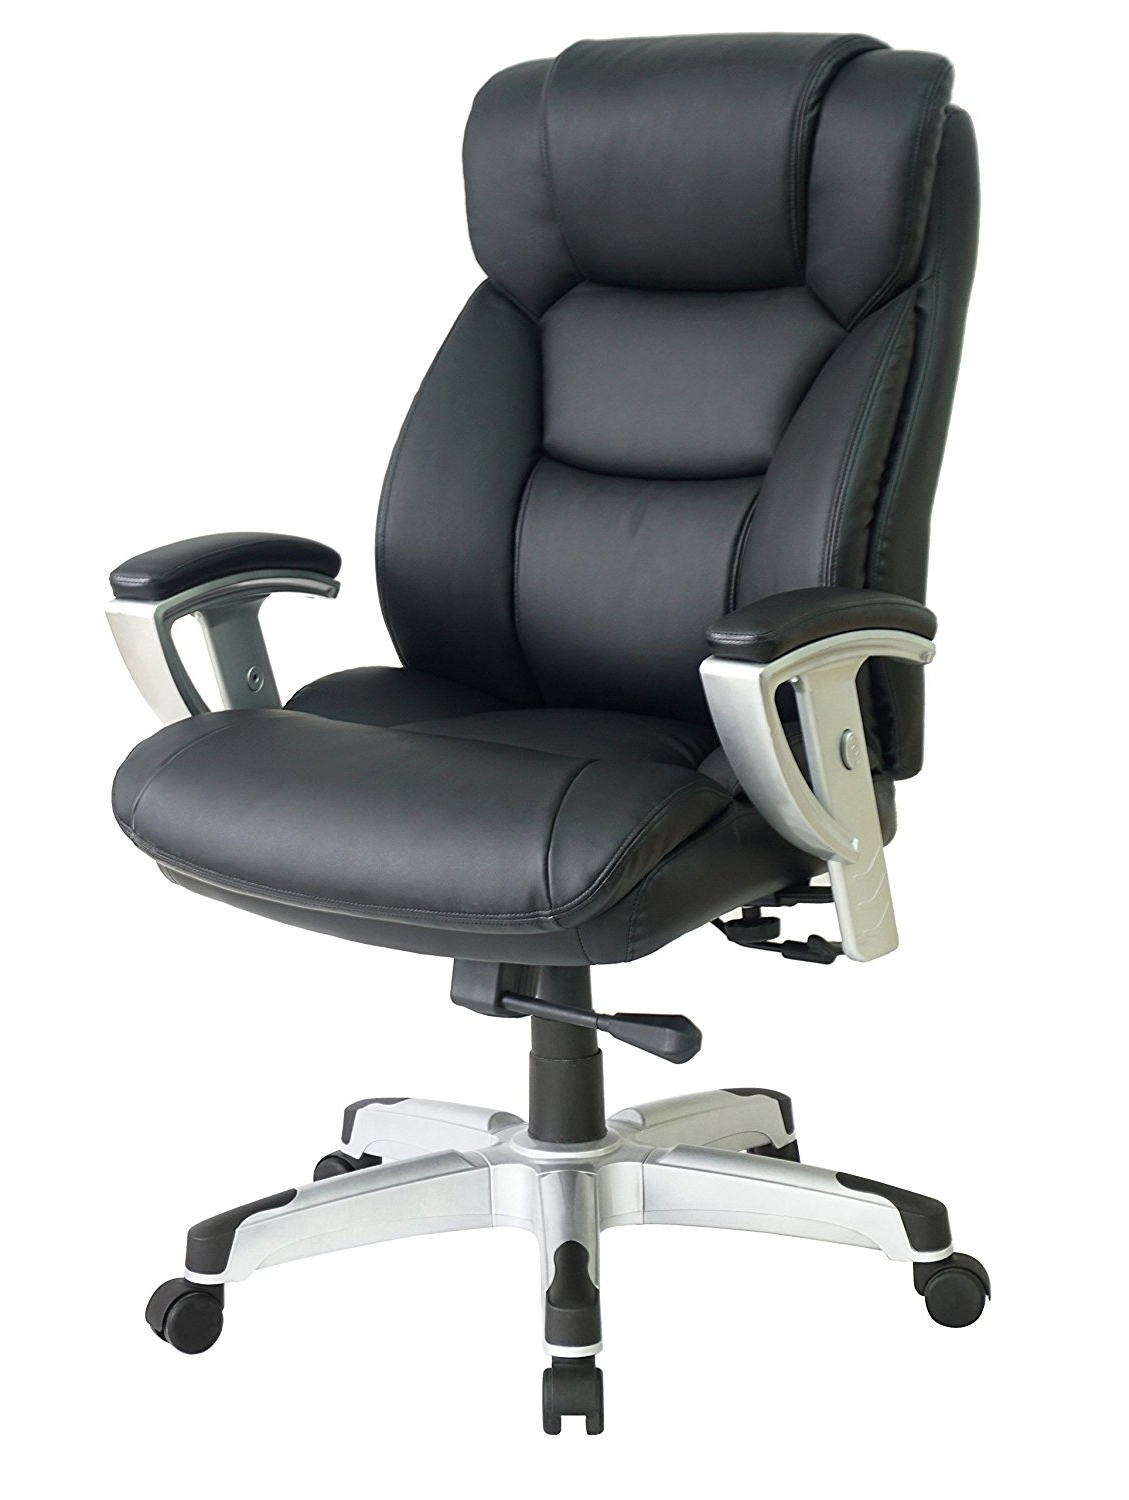 10 Big & Tall Office Chairs For Extra Large Comfort Regarding 2019 Xl Executive Office Chairs (View 1 of 20)